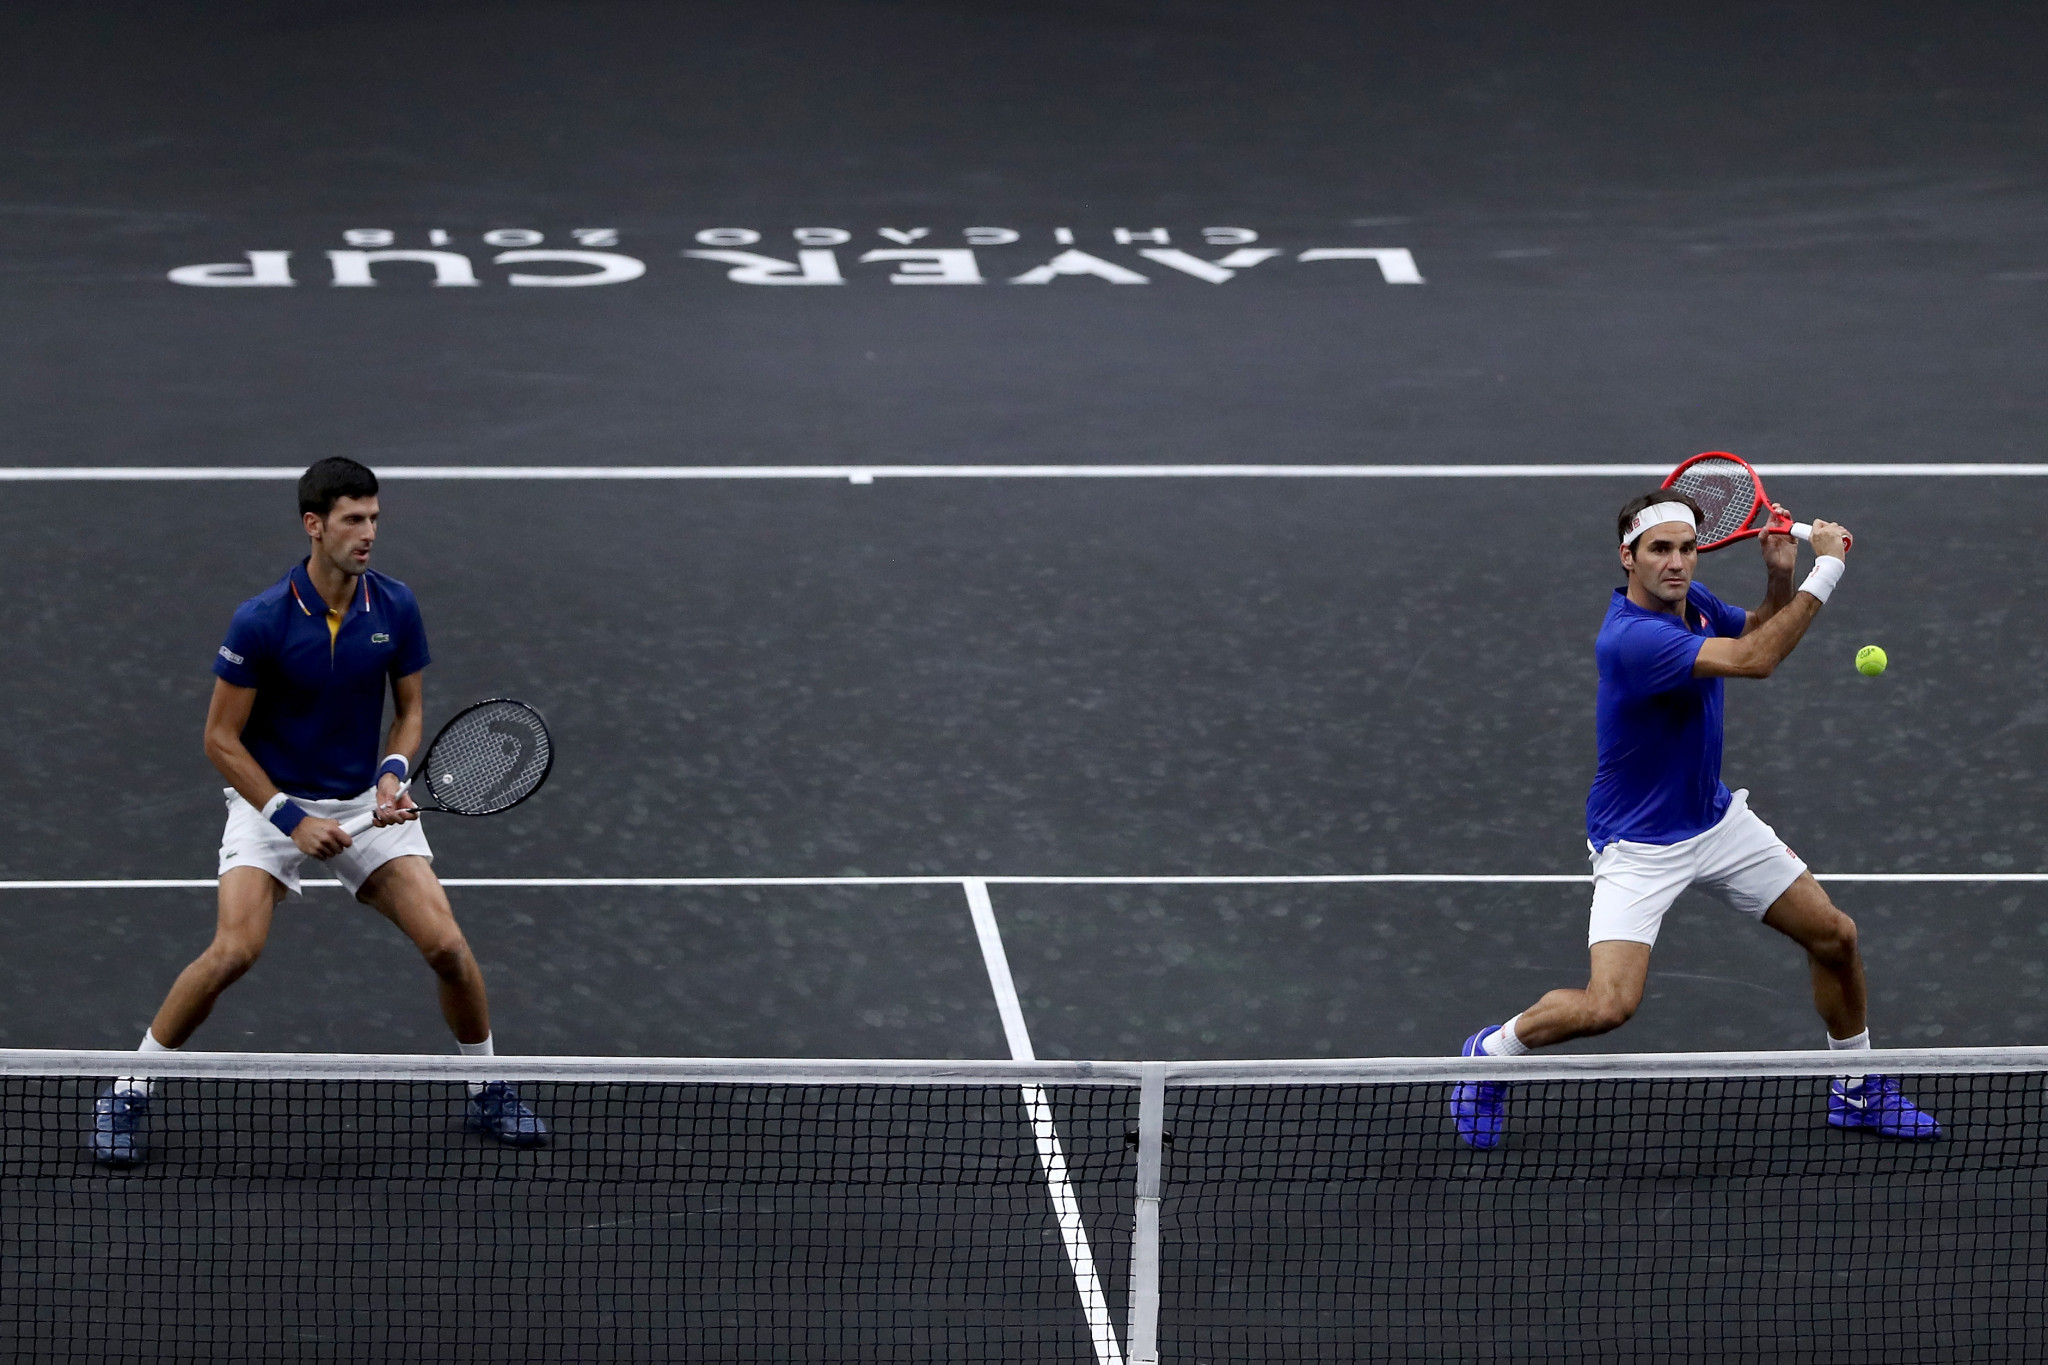 Novak Djokovic and Roger Federer formed a doubles pairing at the Laver Cup ©Getty Images